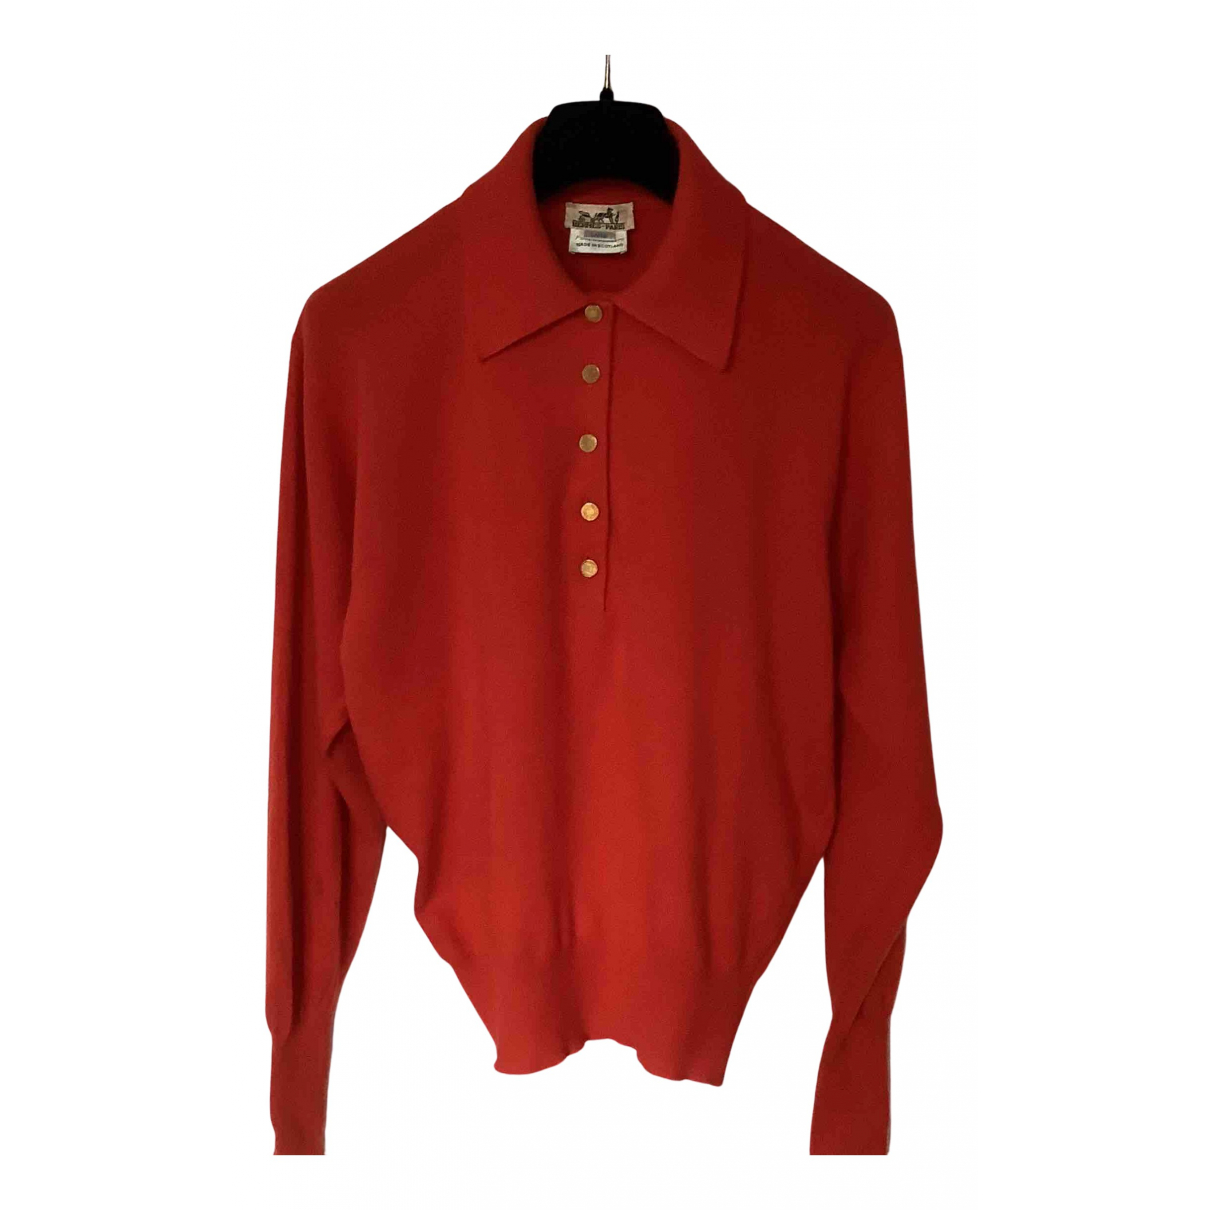 Hermès N Red Cashmere Knitwear for Women 40 FR